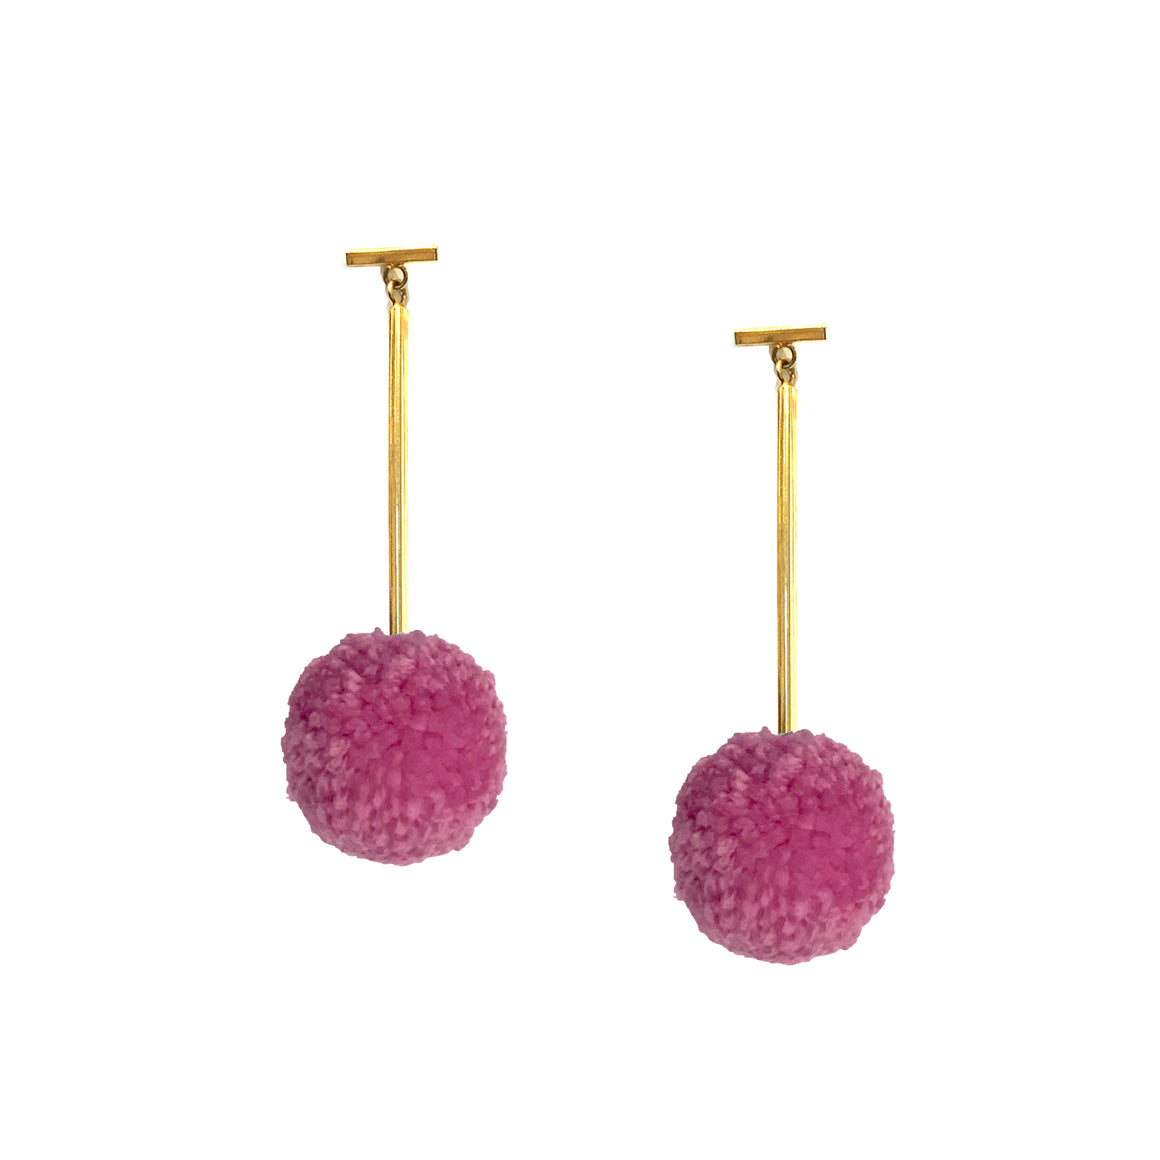 "Hot Rose 1"" Yarn Pom Pom T Bar Earrings, earring, Tuleste, Tuleste"